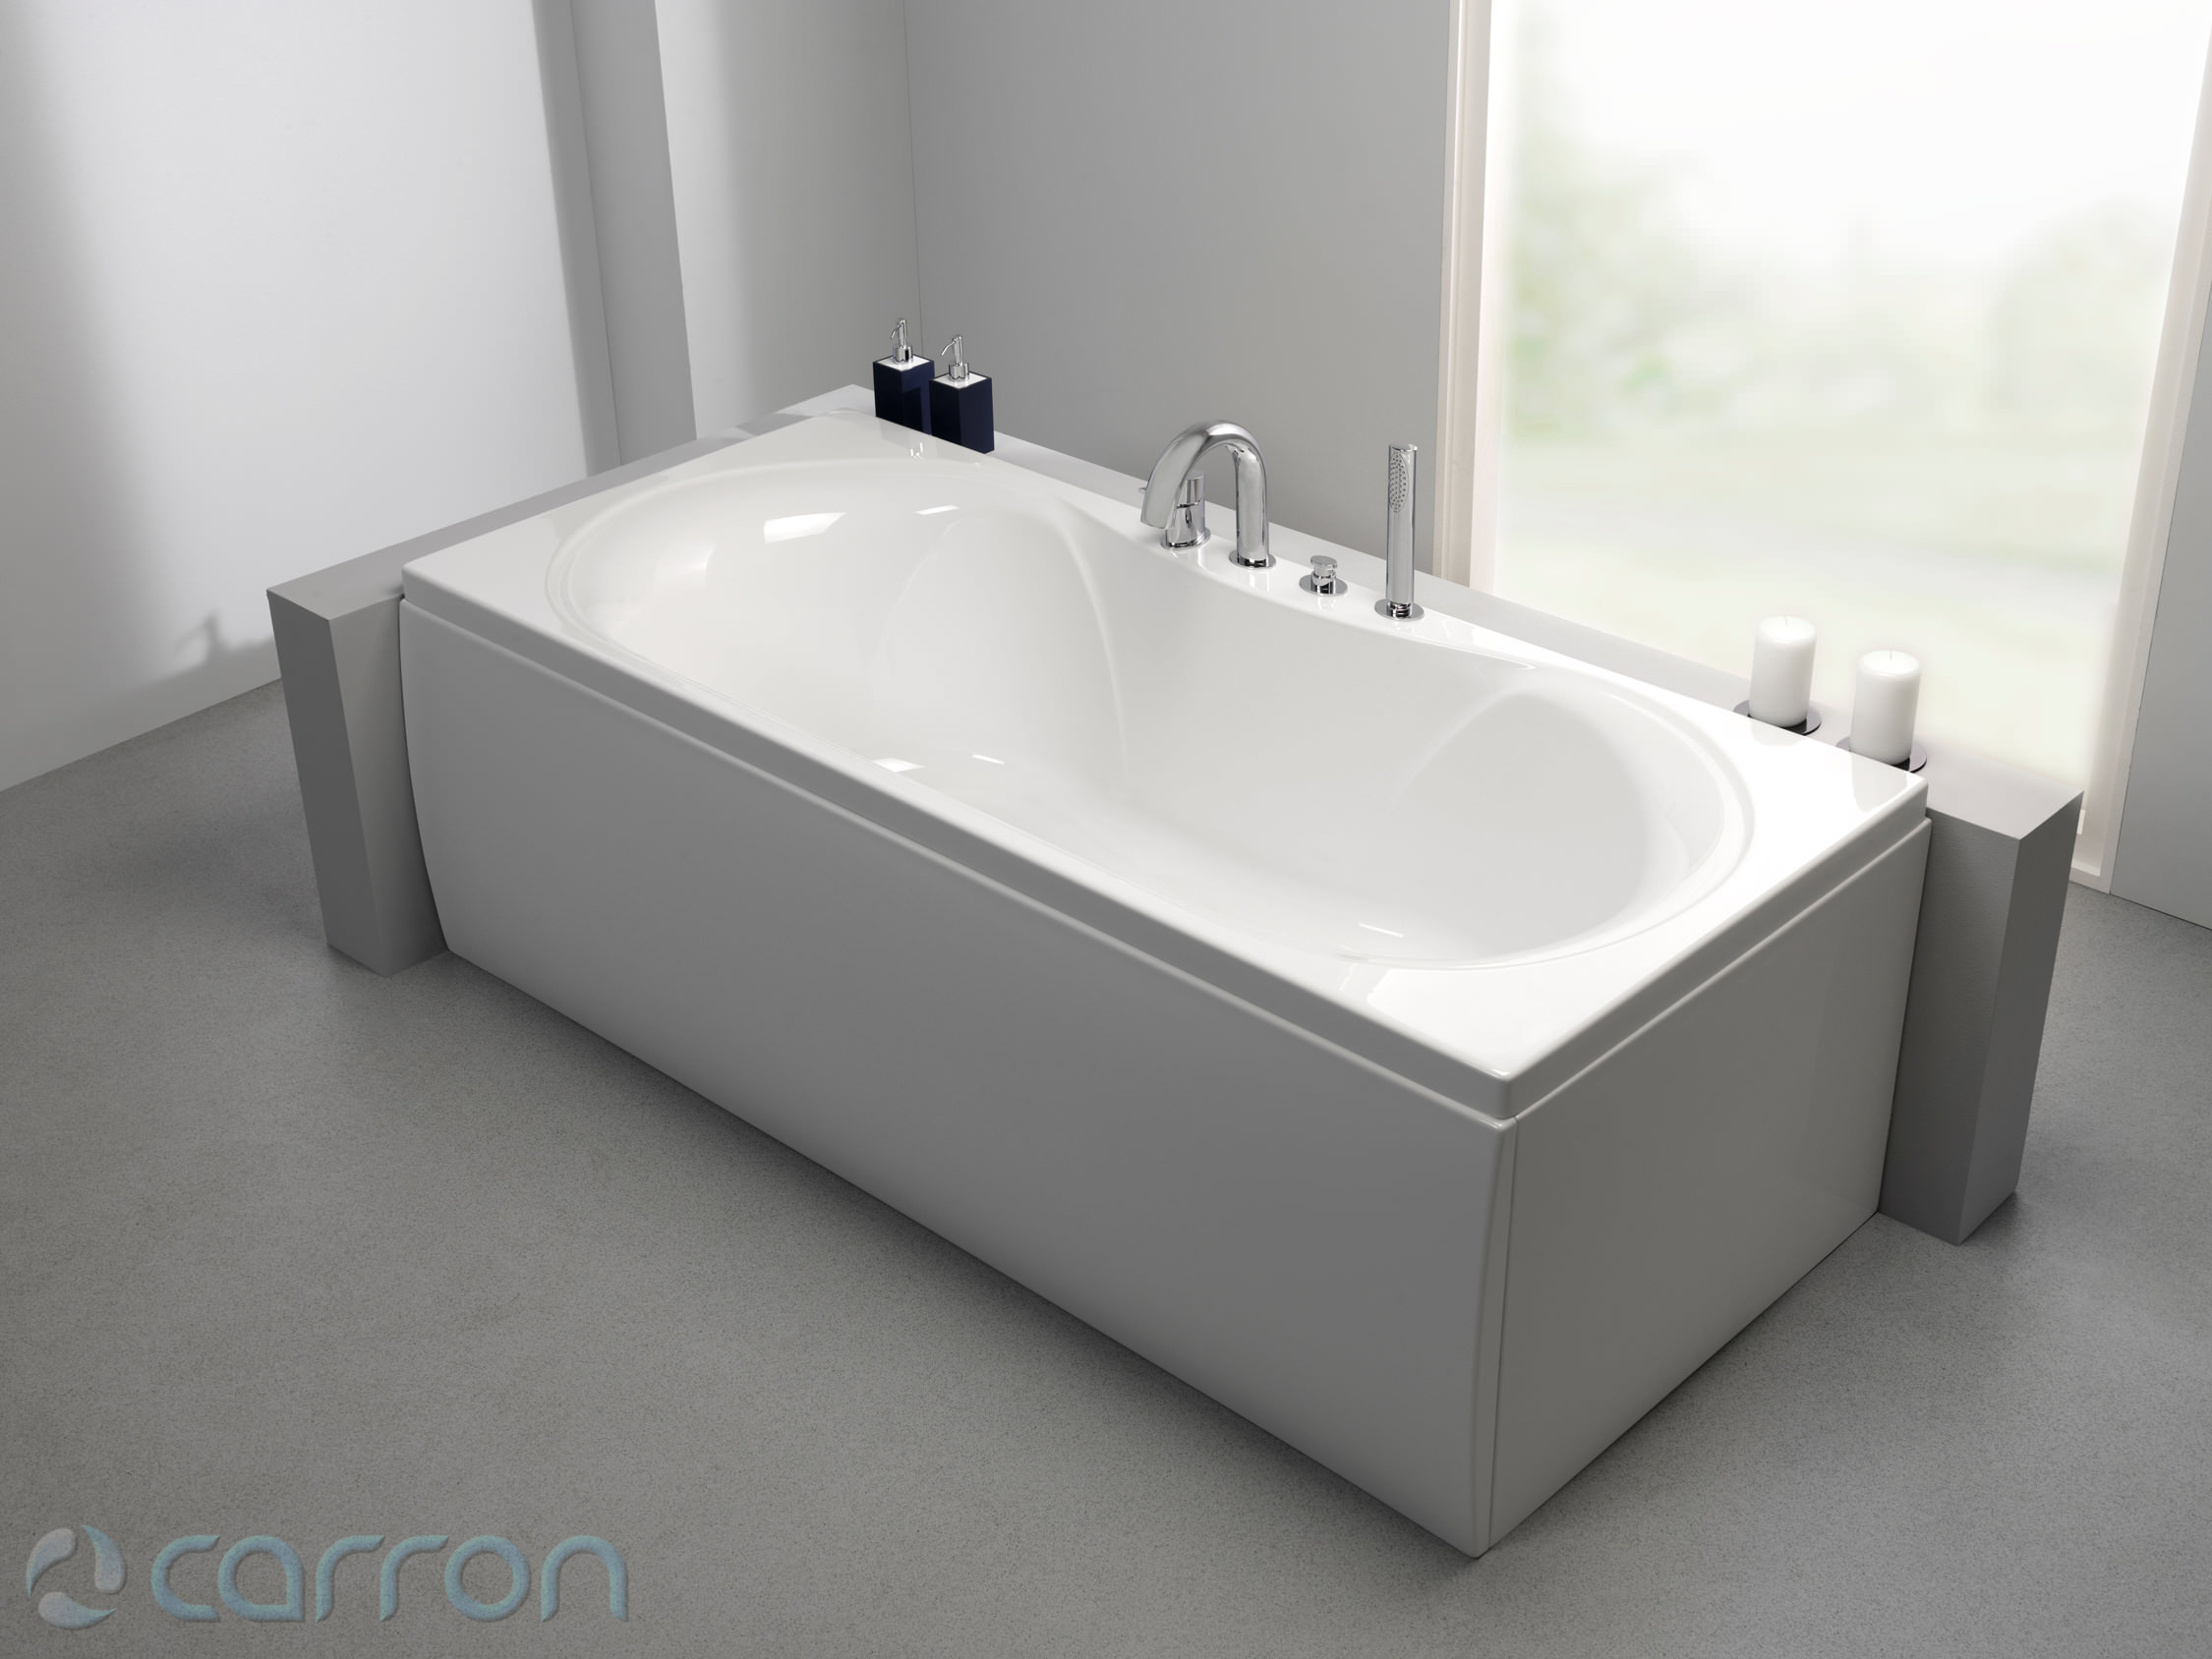 Carron arc duo 5mm acrylic double ended bath 1800 x 800mm for Bath 1800